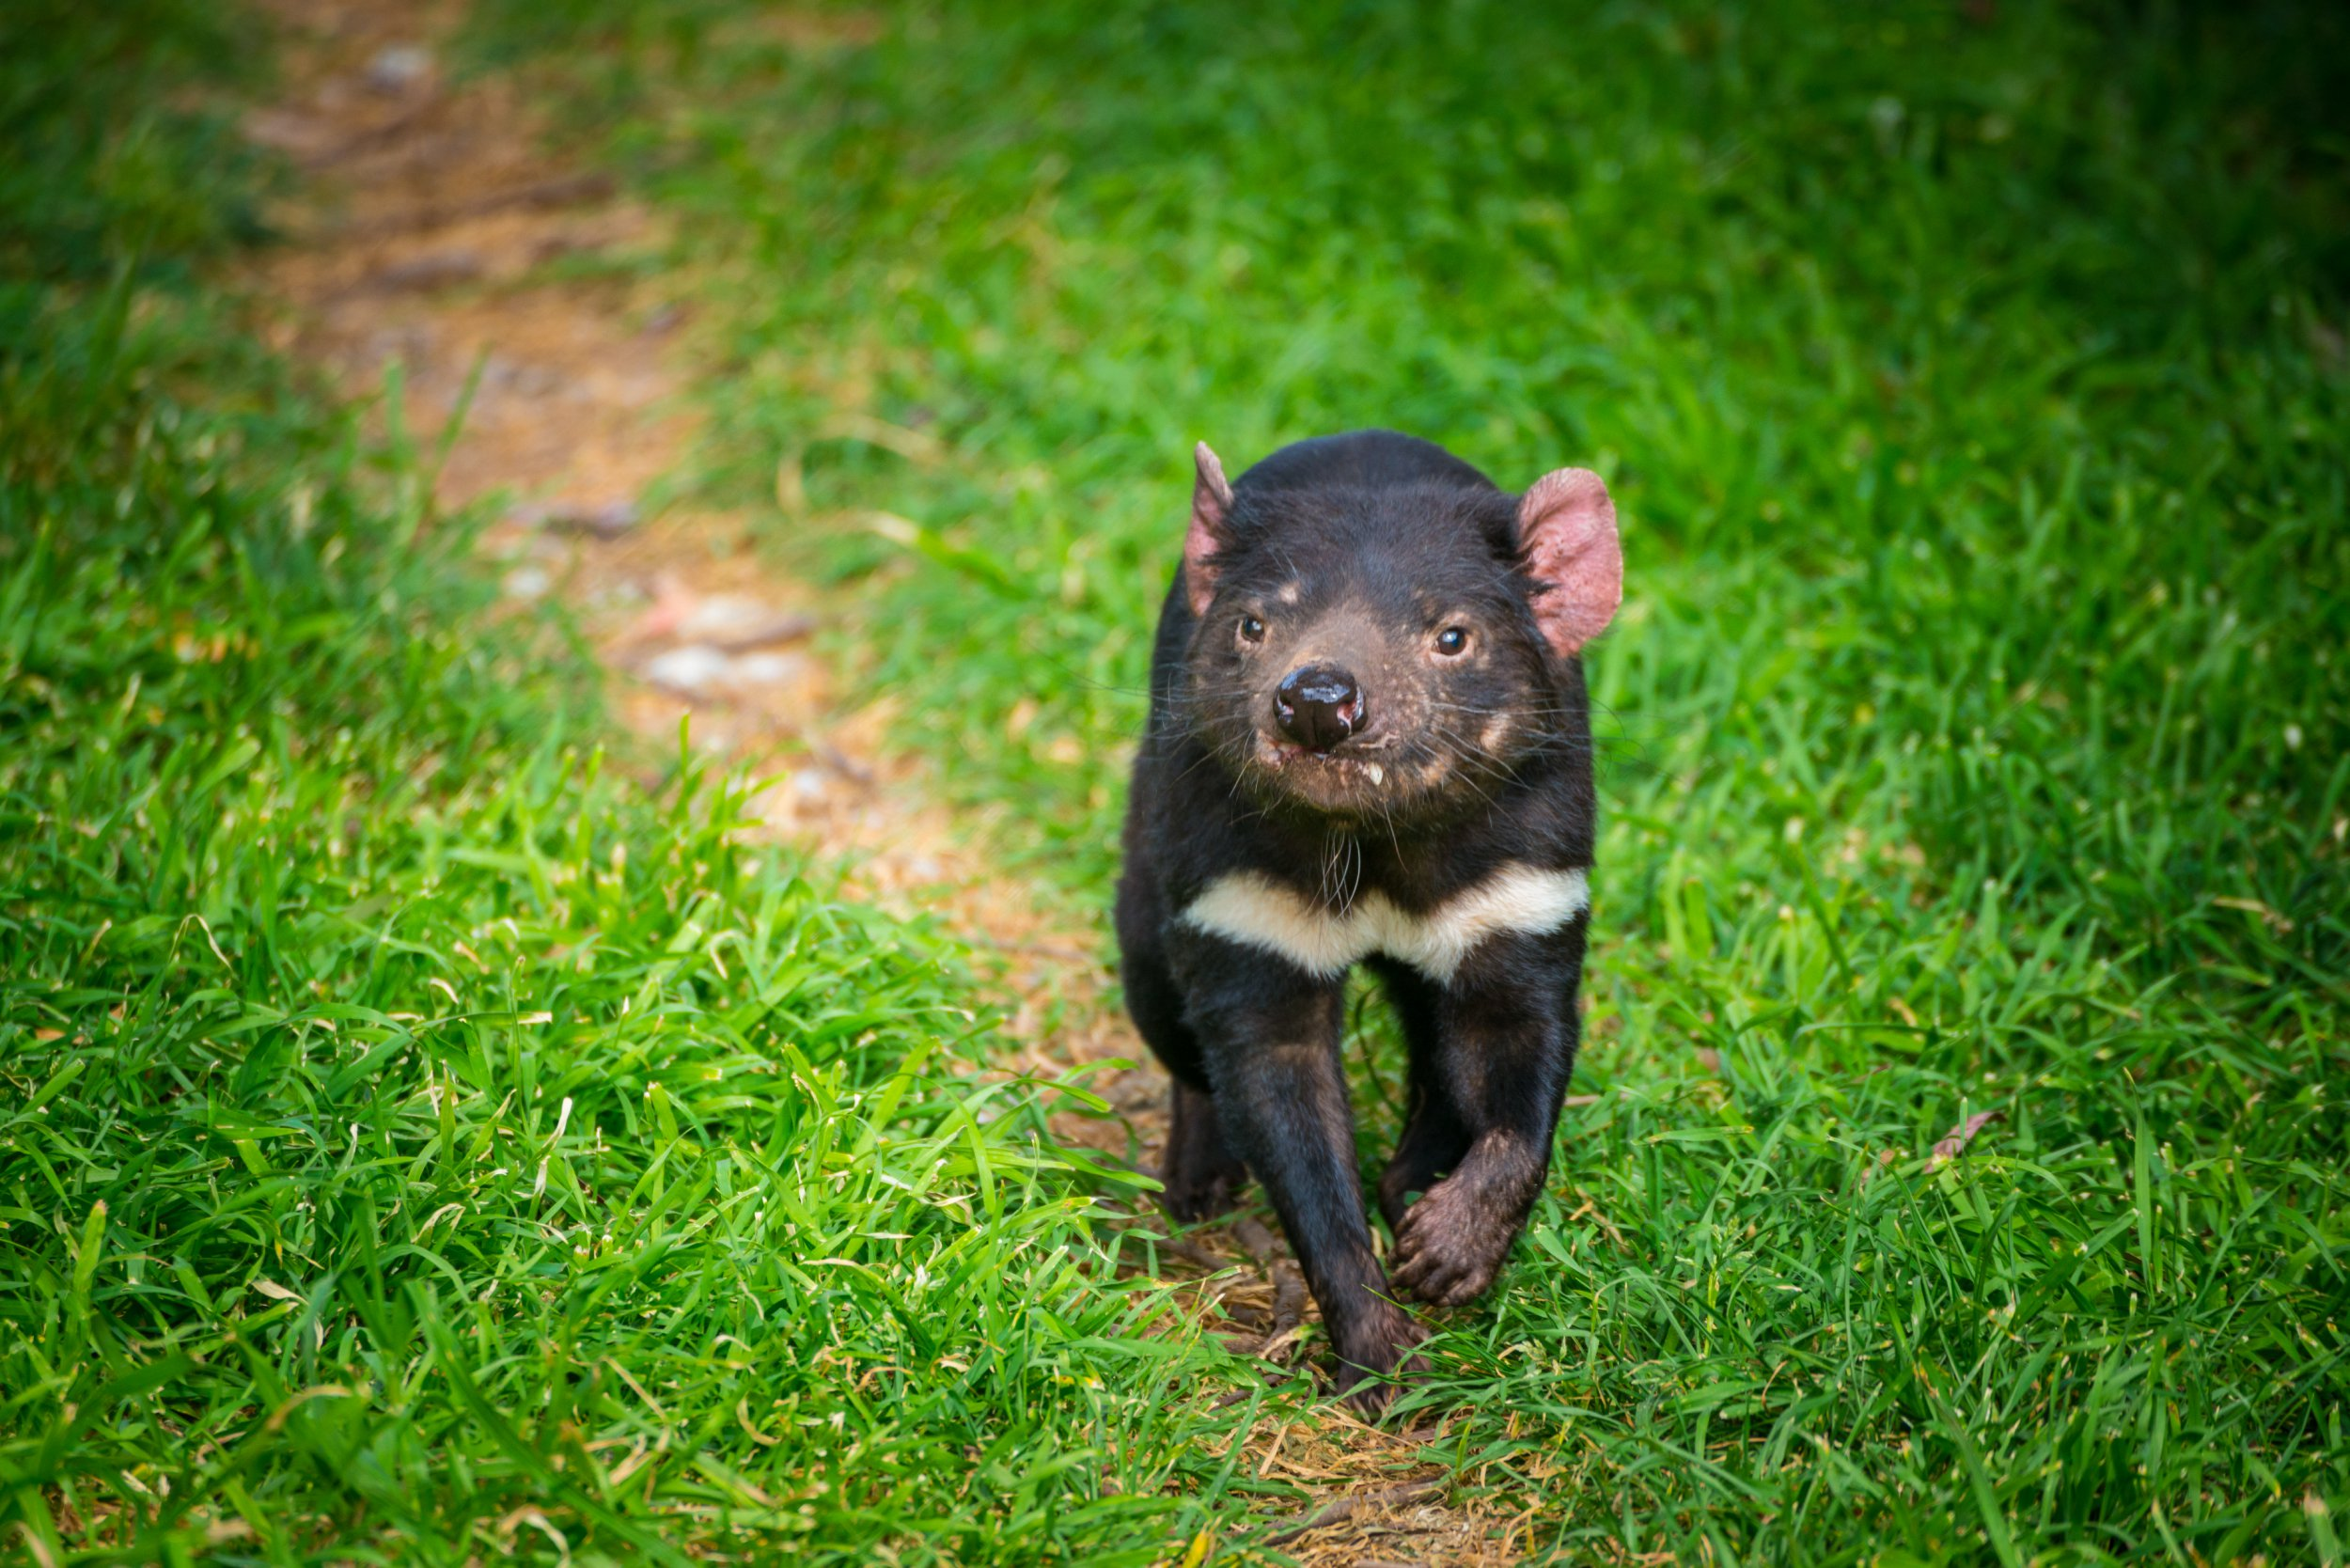 The Tasmanian devil (Sarcophilus harrisii) is a carnivorous marsupial of the family Dasyuridae, now found in the wild only on the Australian island state of Tasmania.